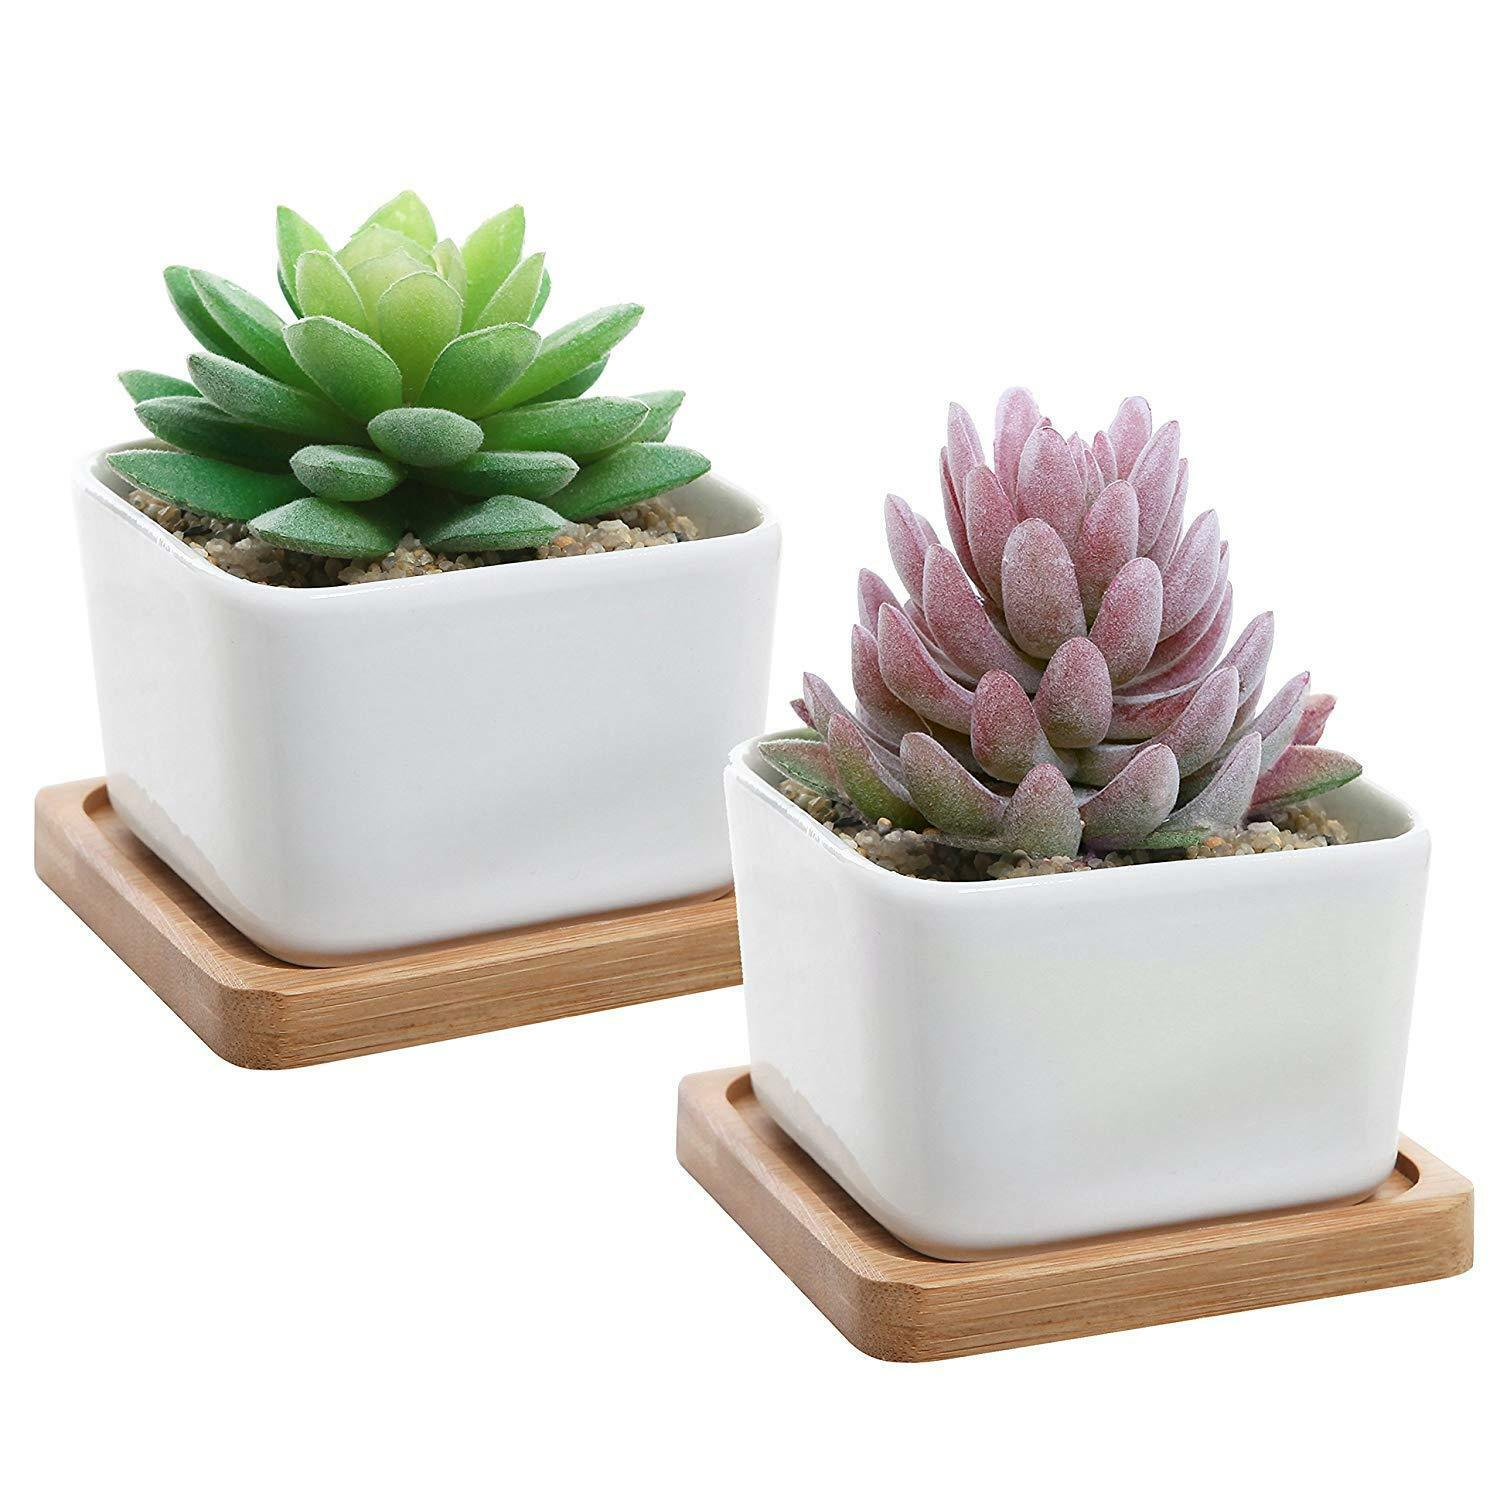 Primary image for Set of 2 Decorative Small White Square Ceramic Succulent Plant Pot w/Bamboo Tray